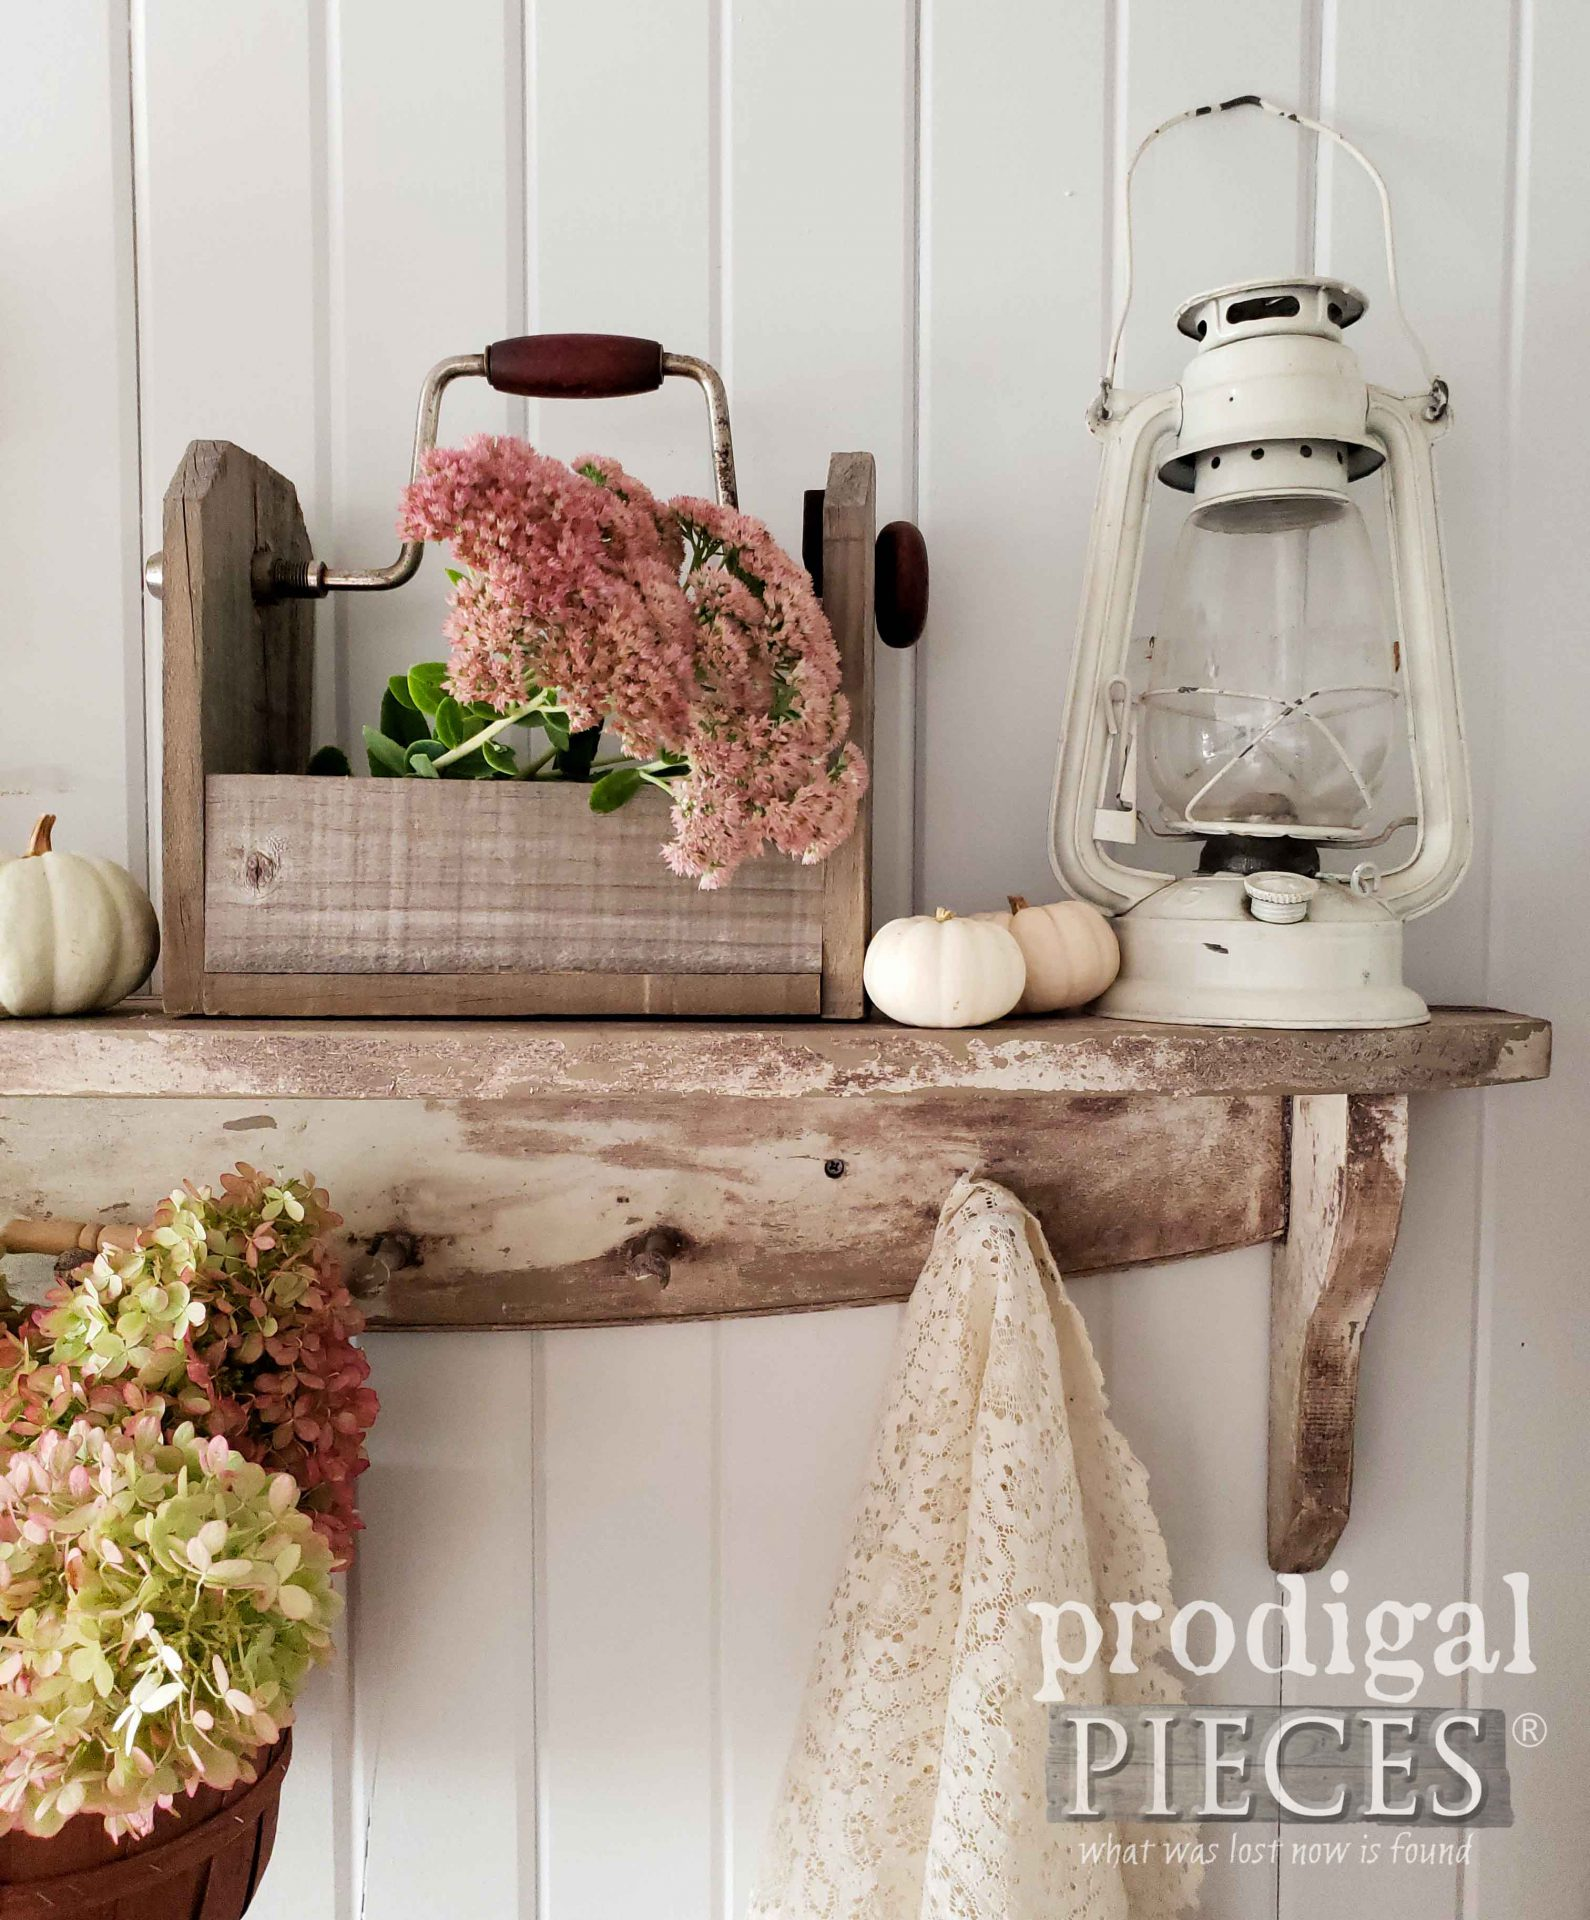 Chippy Farmhouse Shelf DIY with video demo by Larissa of Prodigal Pieces | prodigalpieces.com #prodigalpieces #diy #home #farmhouse #handmade #fall #homedecor